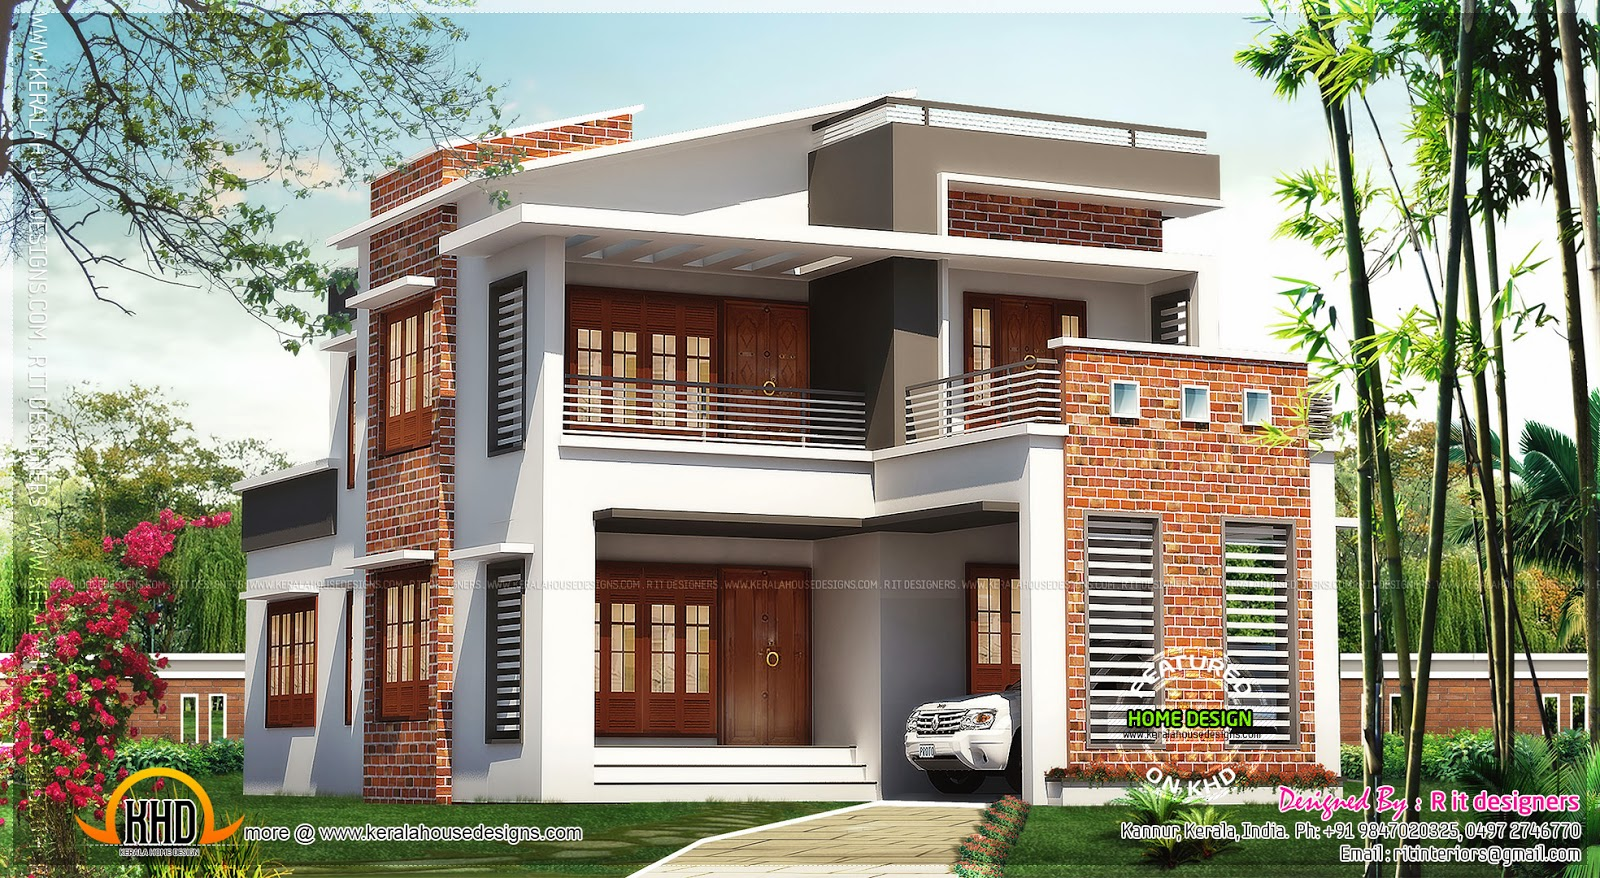 Brick mix house exterior design kerala home design and for Brick house exterior design